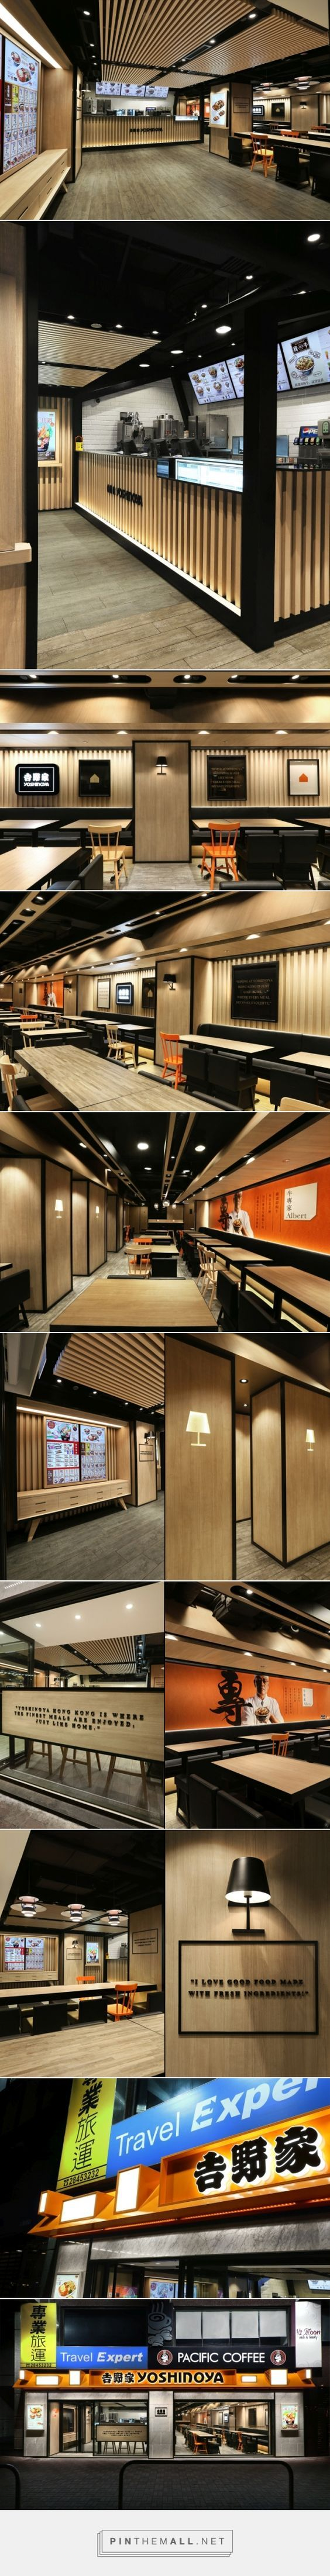 Yoshinoya Fast Food Restaurant by AS Design Service, Hong Kong »  Retail Design Blog - created via https://pinthemall.net: